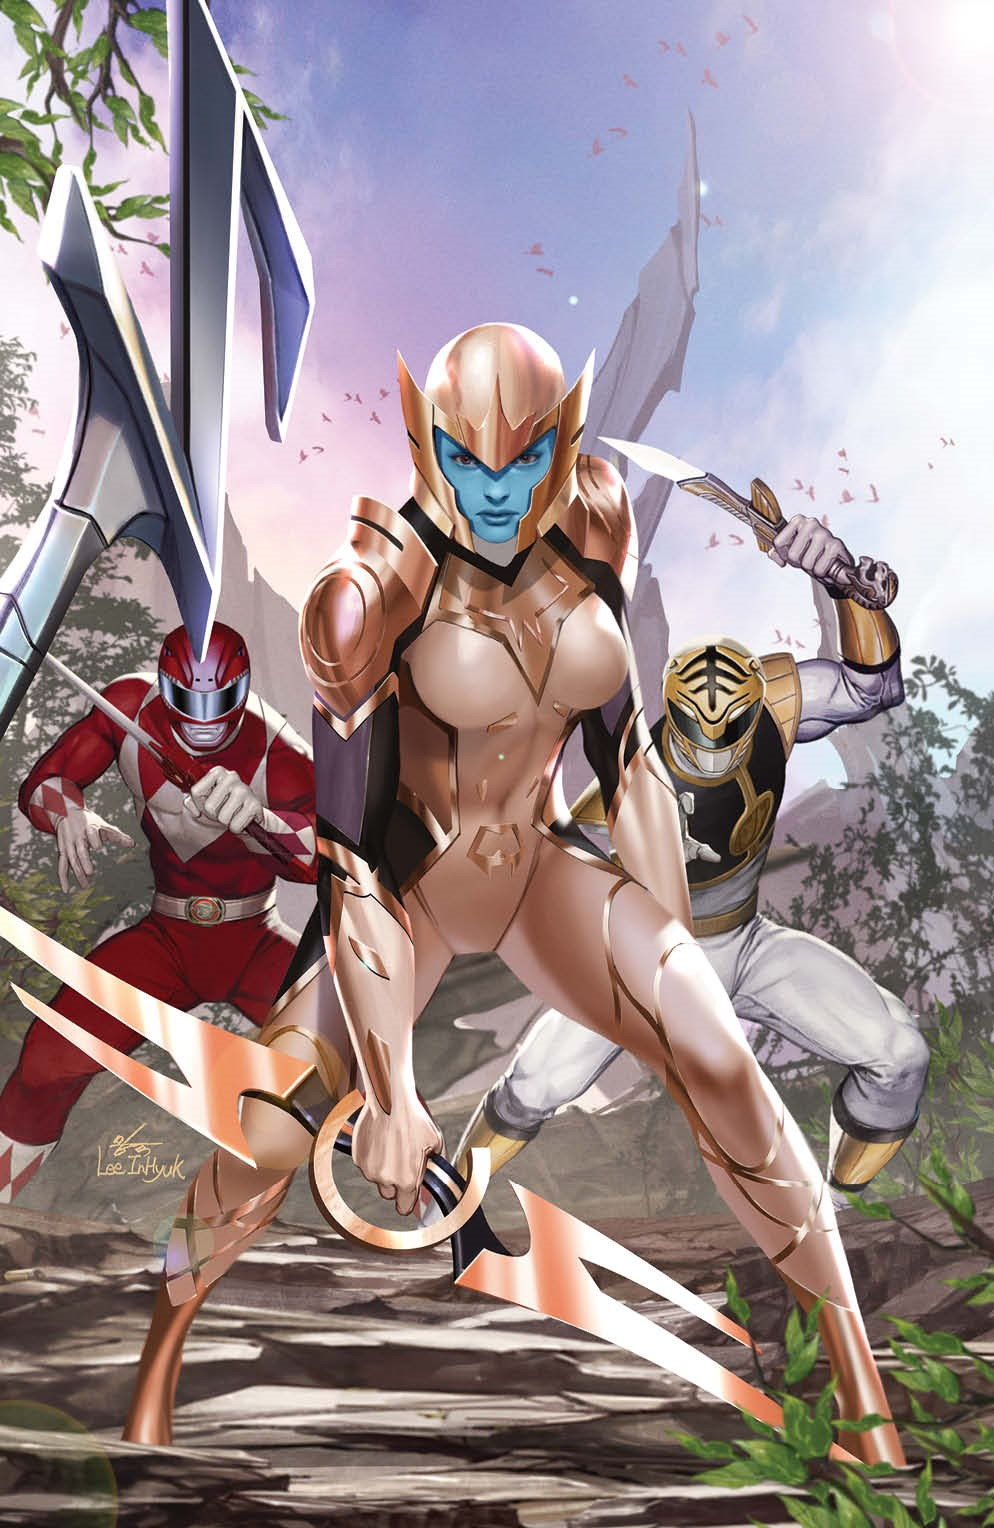 MightyMorphin_011_Cover_C_Variant_Undressed ComicList Previews: MIGHTY MORPHIN #11